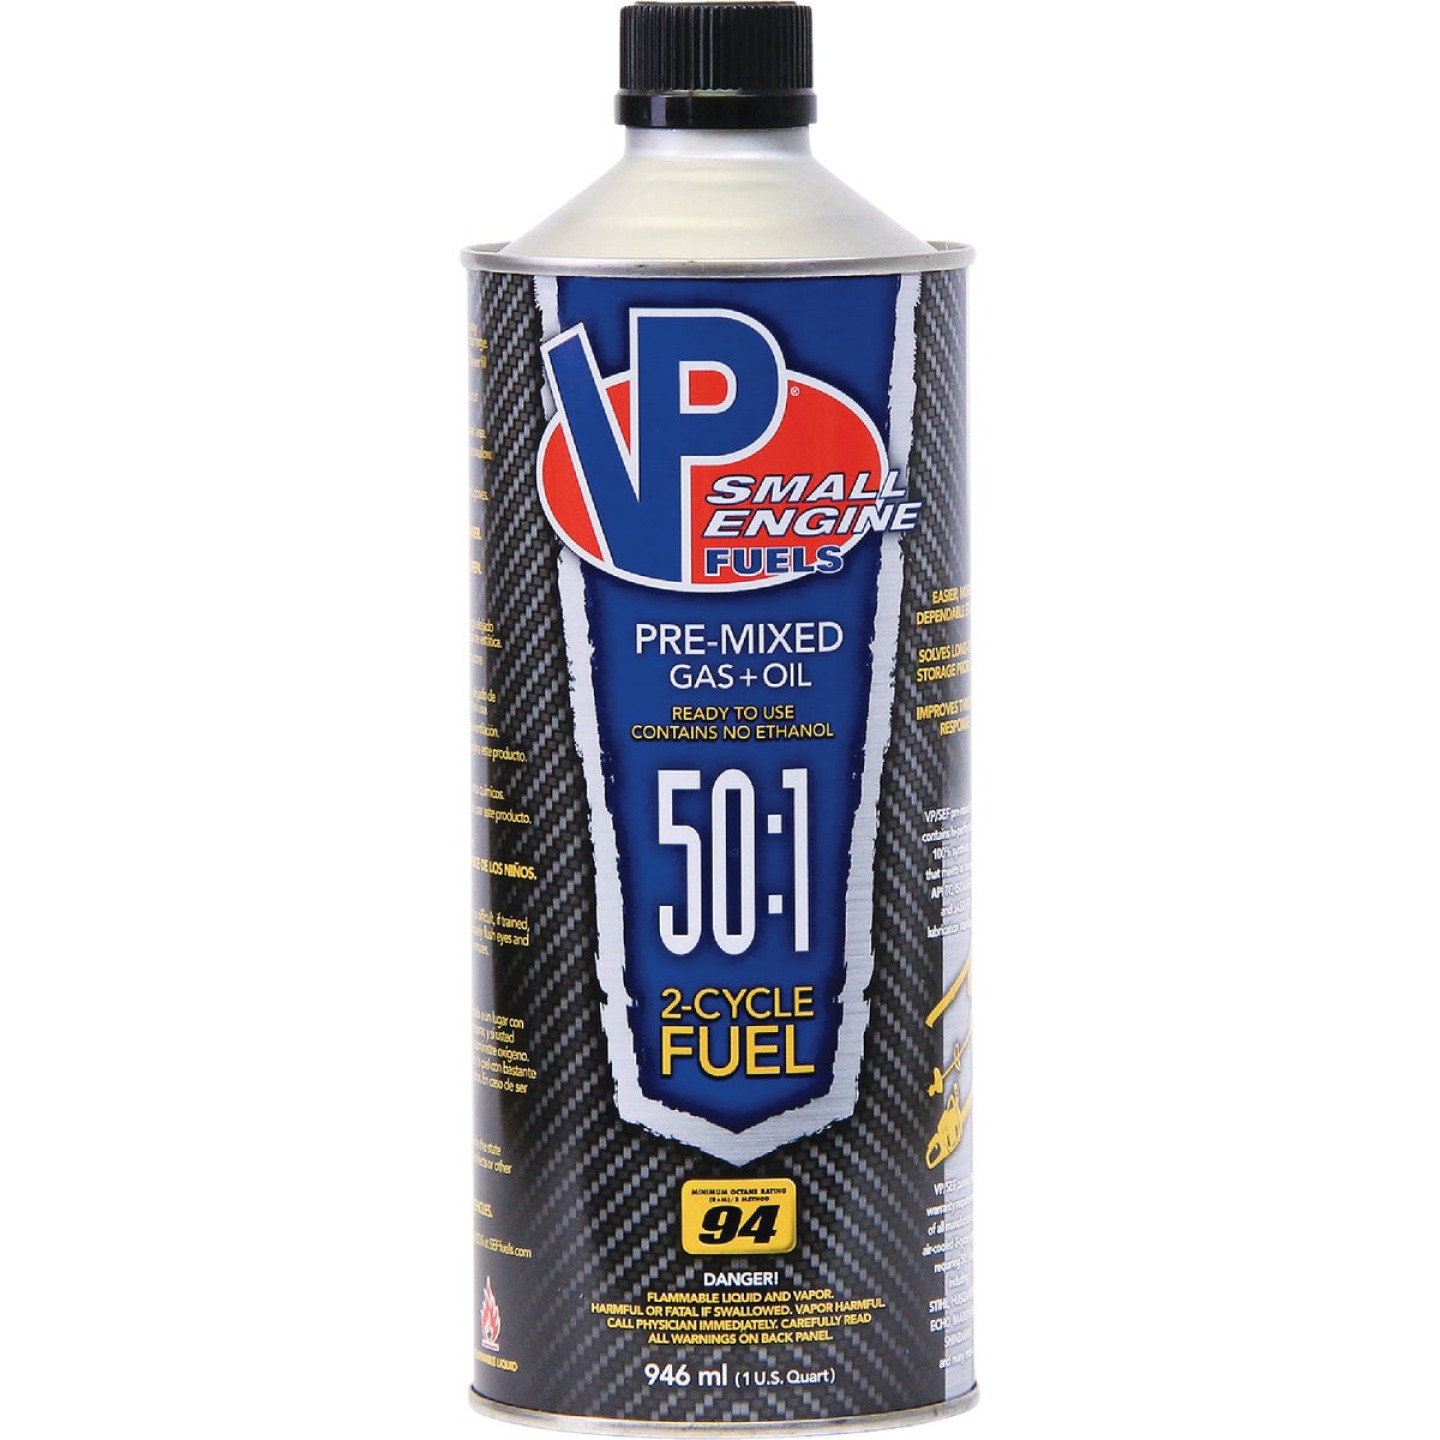 VP Small Engine Fuels 32 Oz. 50:1 Ethanol-Free Gas & Oil Pre-Mix Image 1